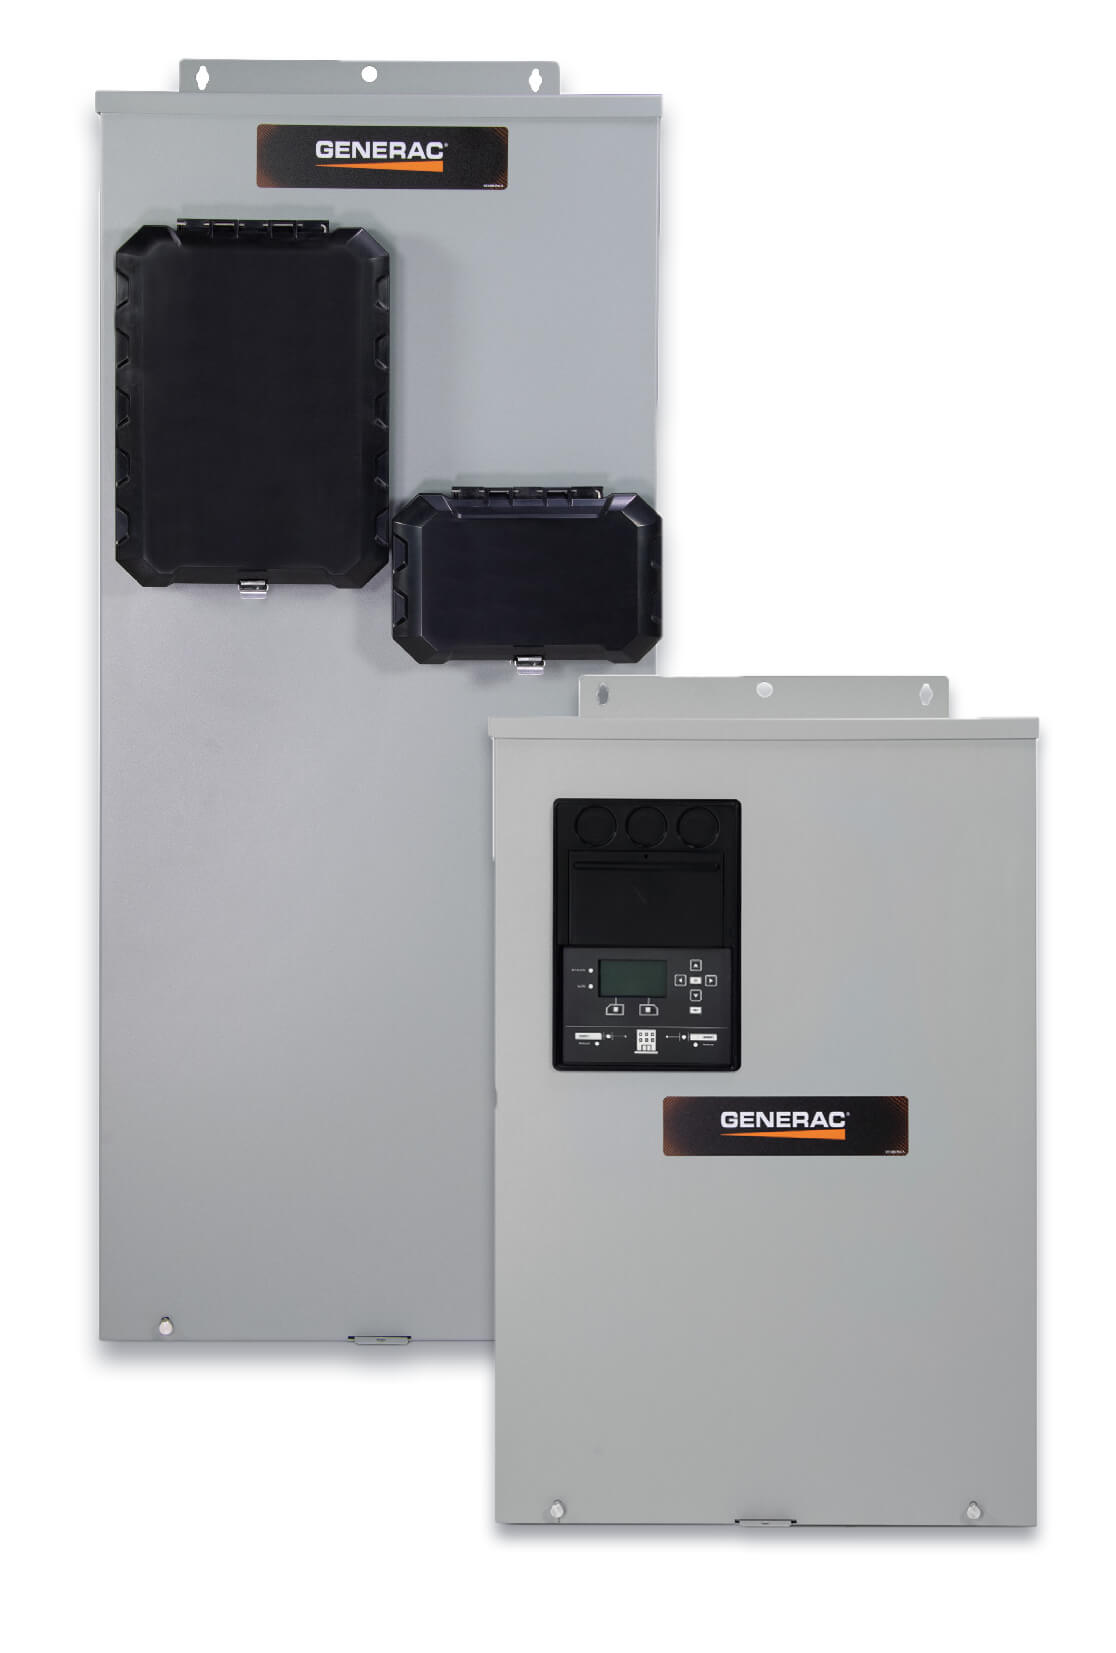 Generac transfer switch - TX301 Series - at Wolverine Power Systems